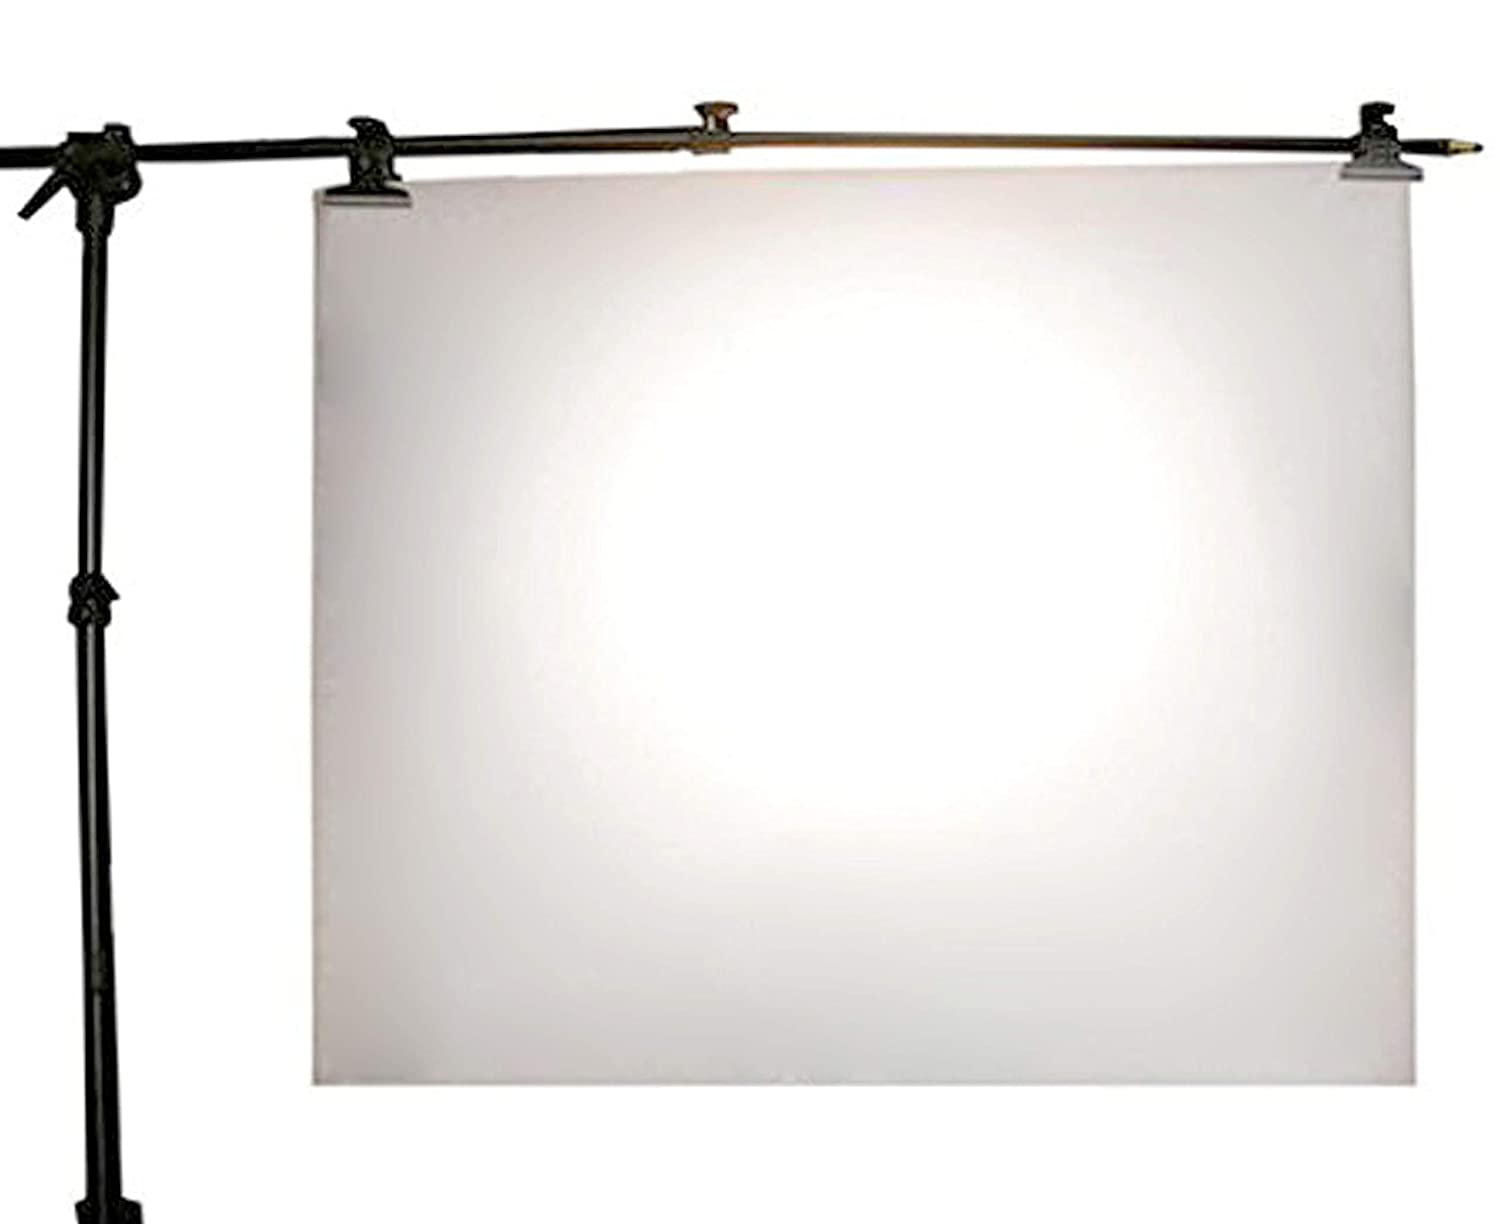 """12 Sheets 15/""""x15 Pack Light Diffuser Superior Seamless Photography Diffusion Paper Sheet 15 Inches x 15 Diffusion Filter"""